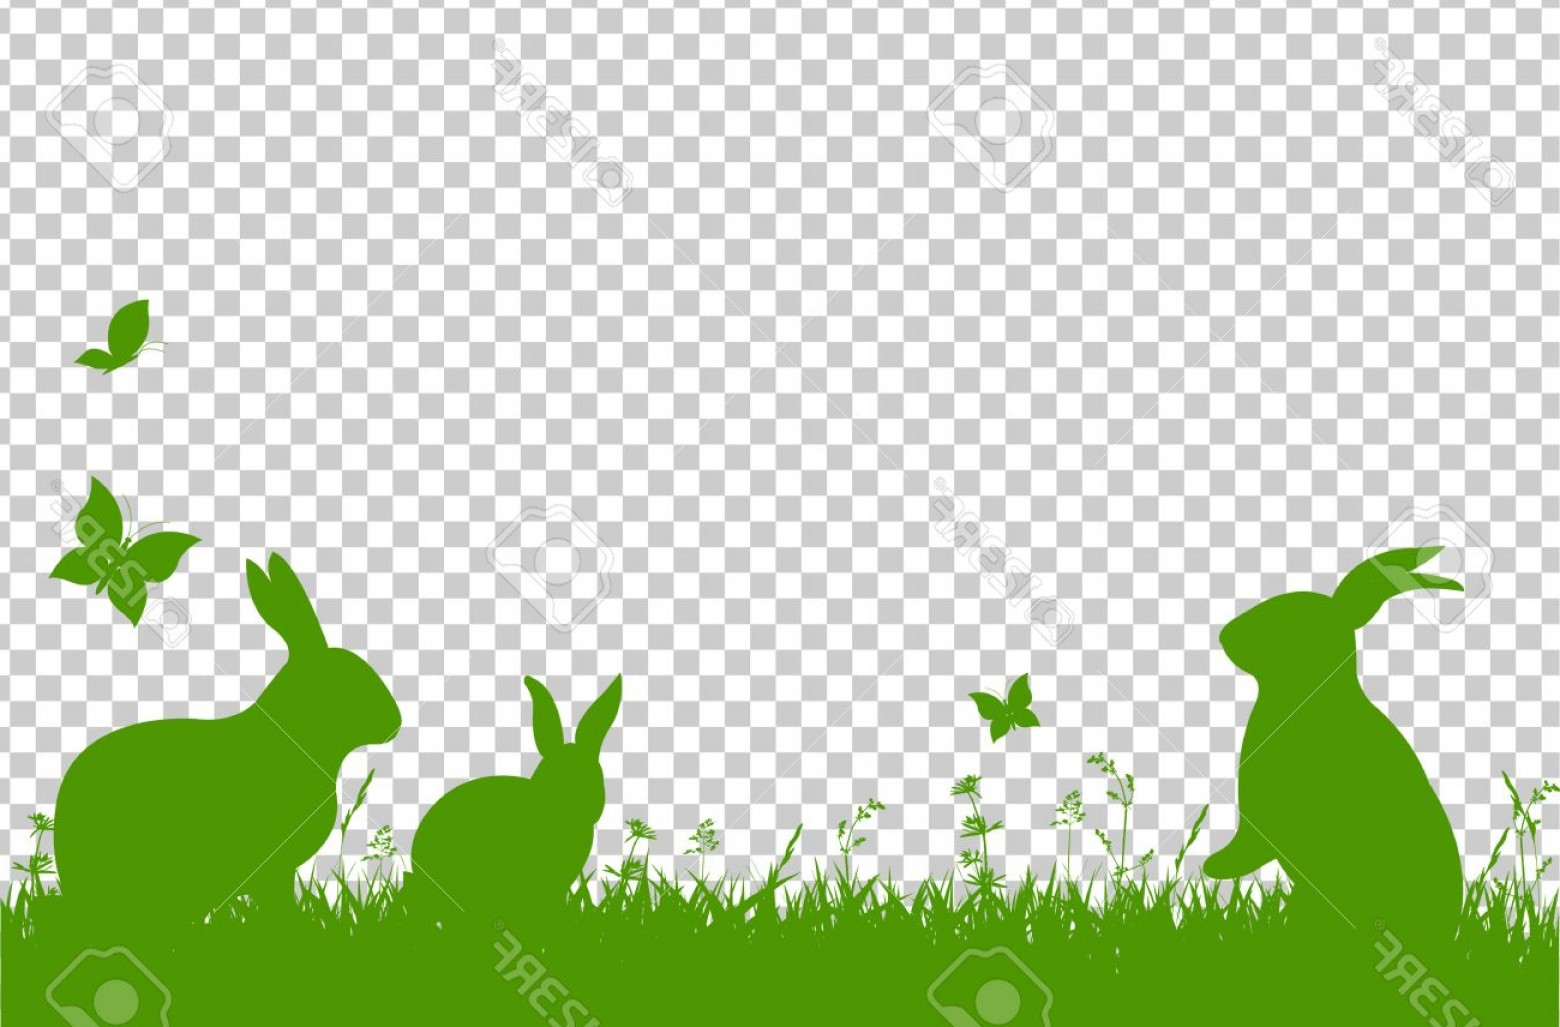 Easter Vector No Background: Photostock Vector Happy Easter Border Isolated On Transparent Background Vector Illustration